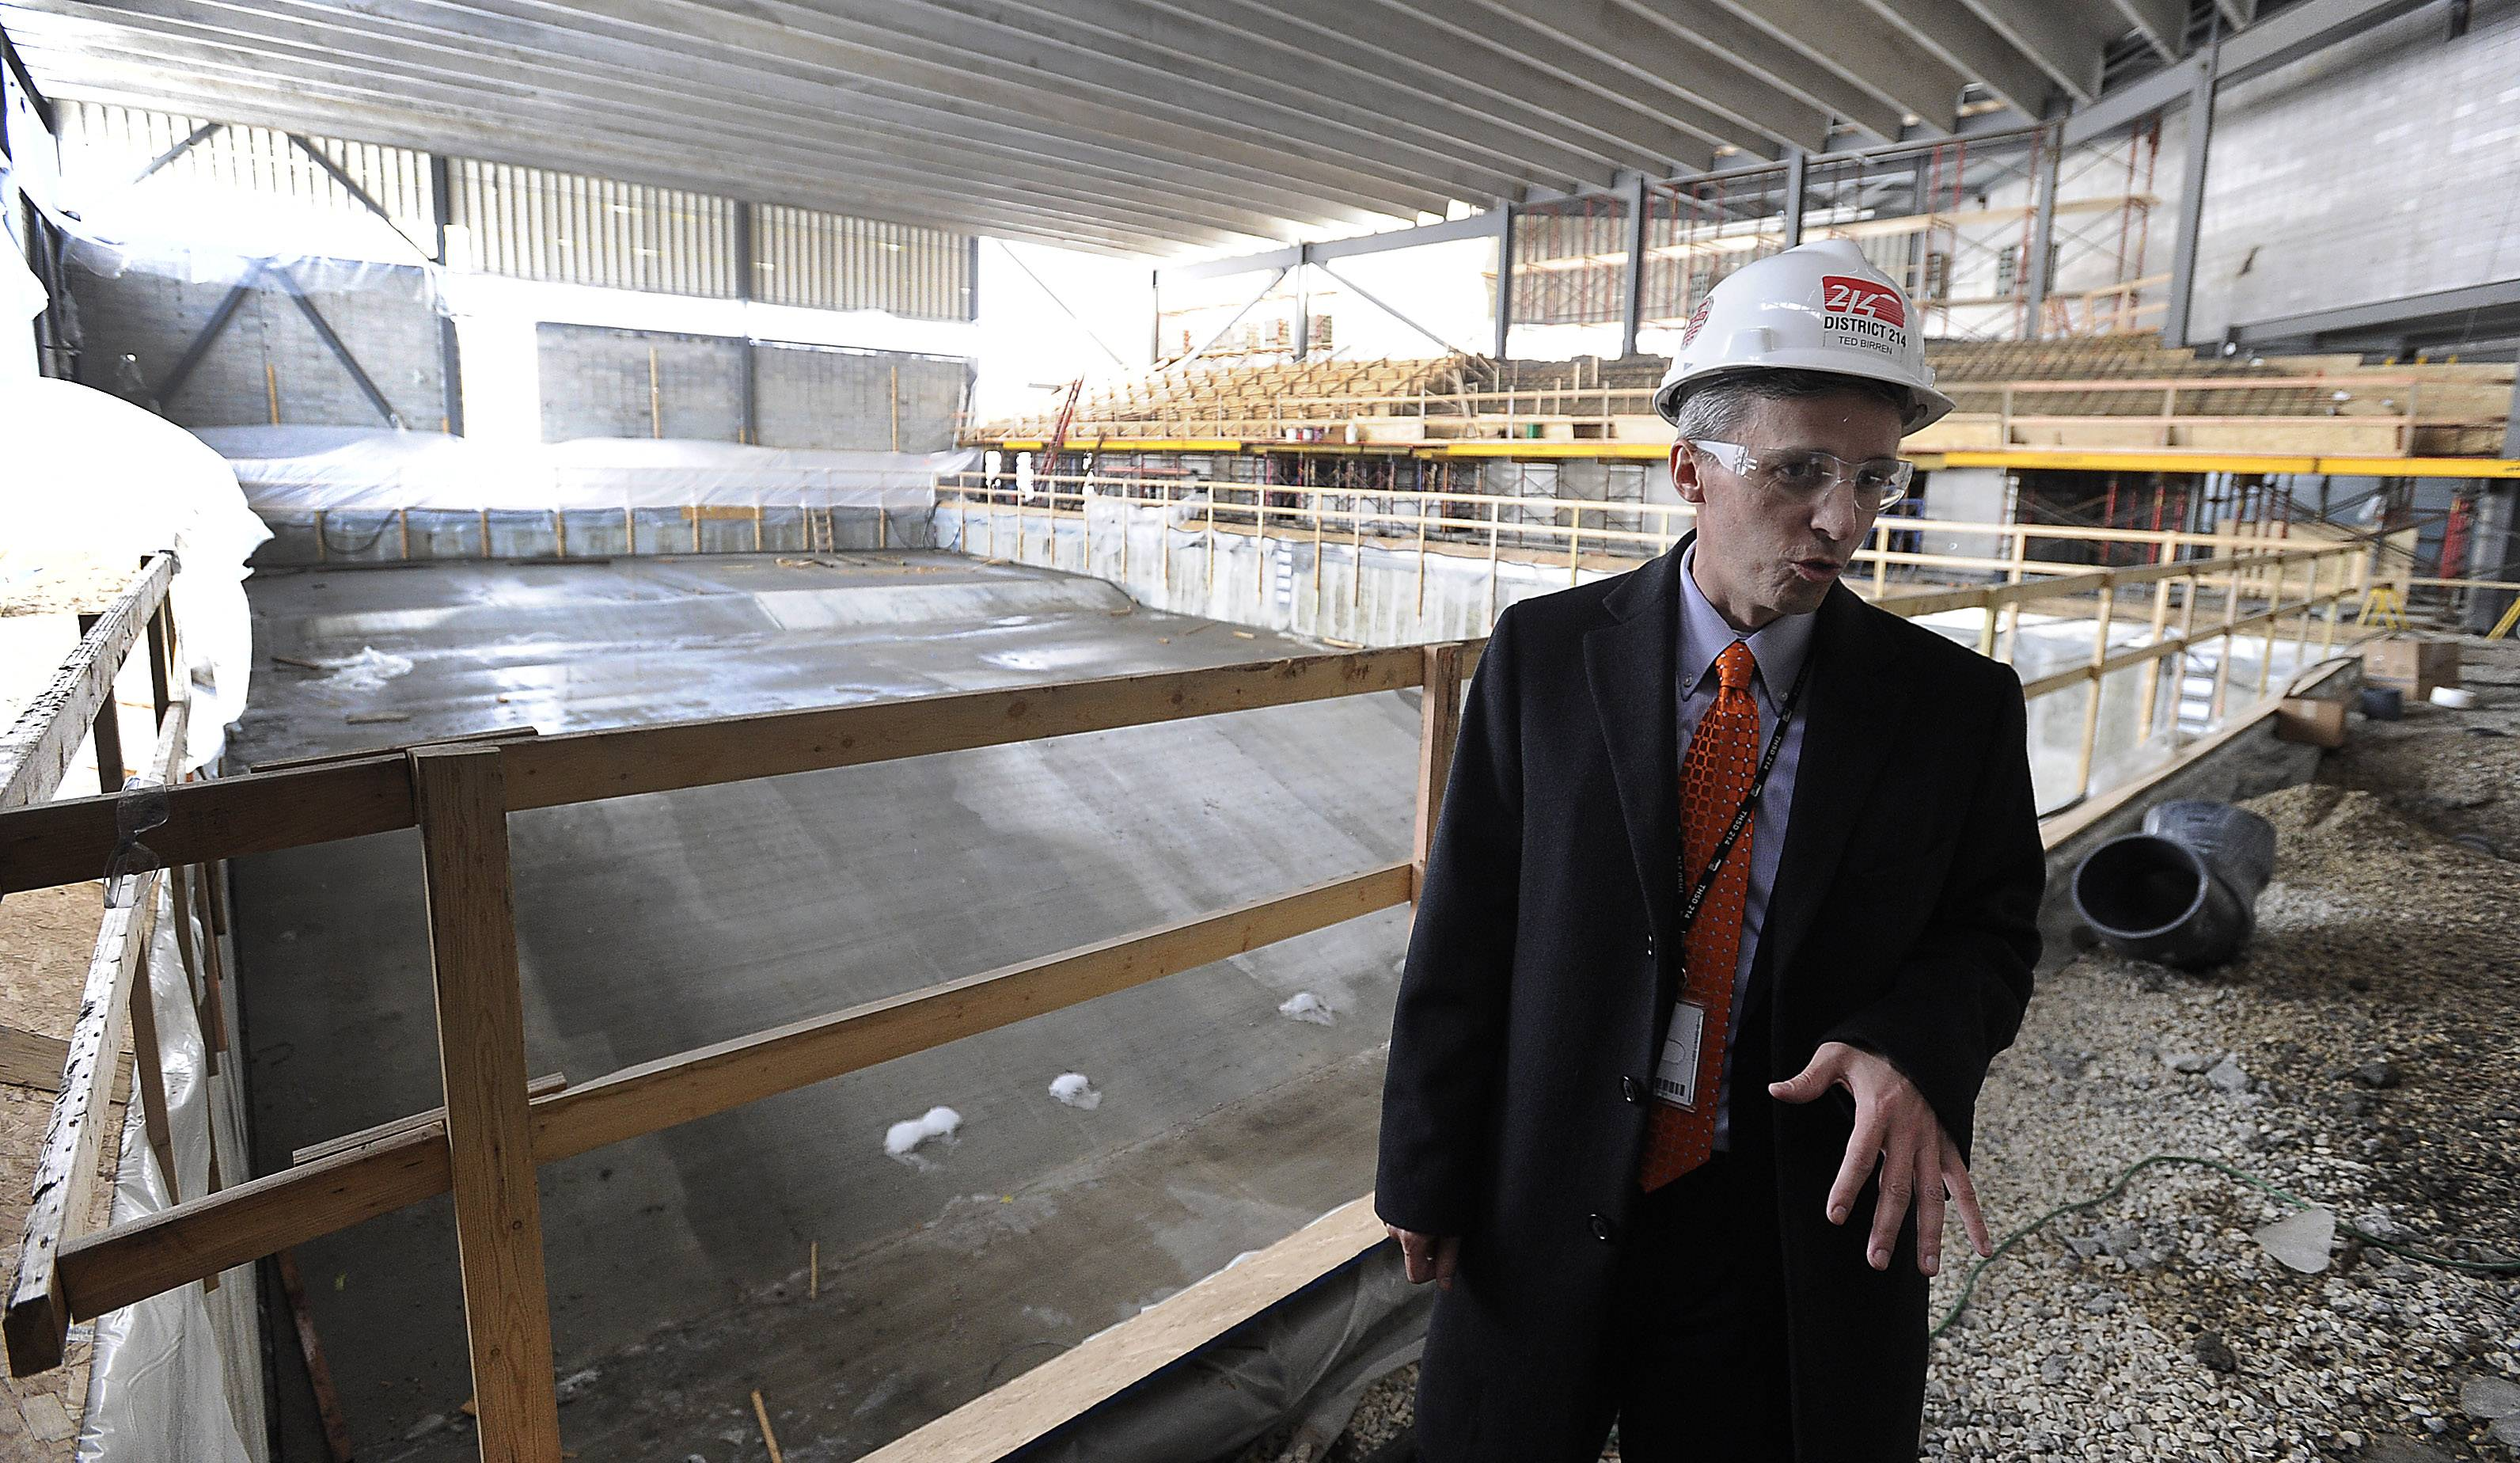 Ted Birren, District 214 director of operations, talks about the new $11 million pool at Buffalo Grove High School.